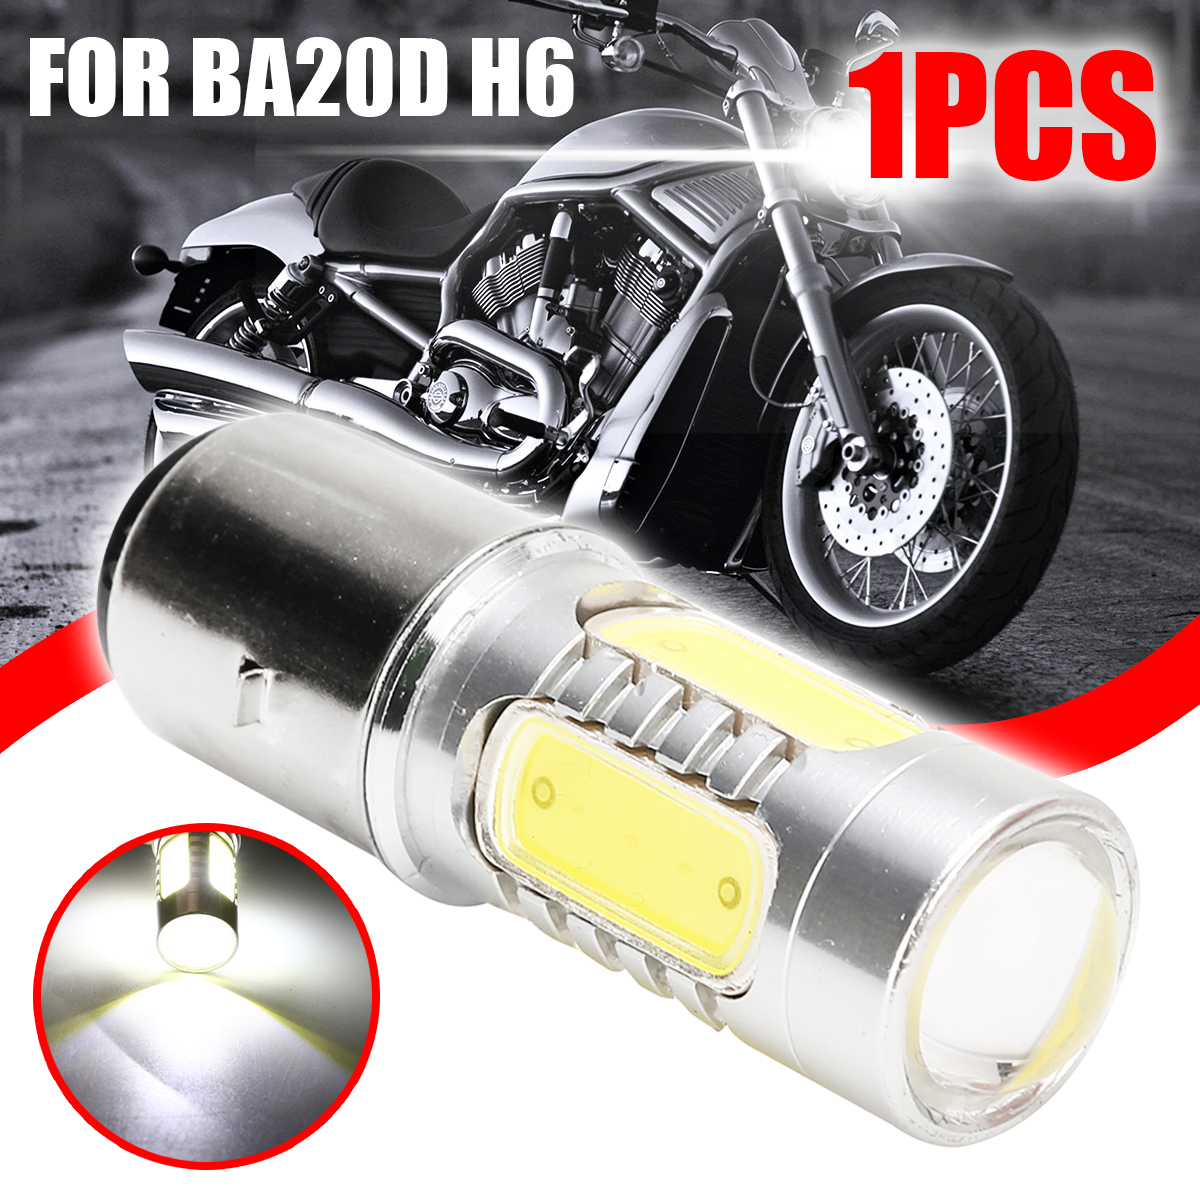 Treyues 1 Pc BA20D H6 Motorcycle Headlight DC12V 4COB LED Light Bulb White For Moped Scooter ATV